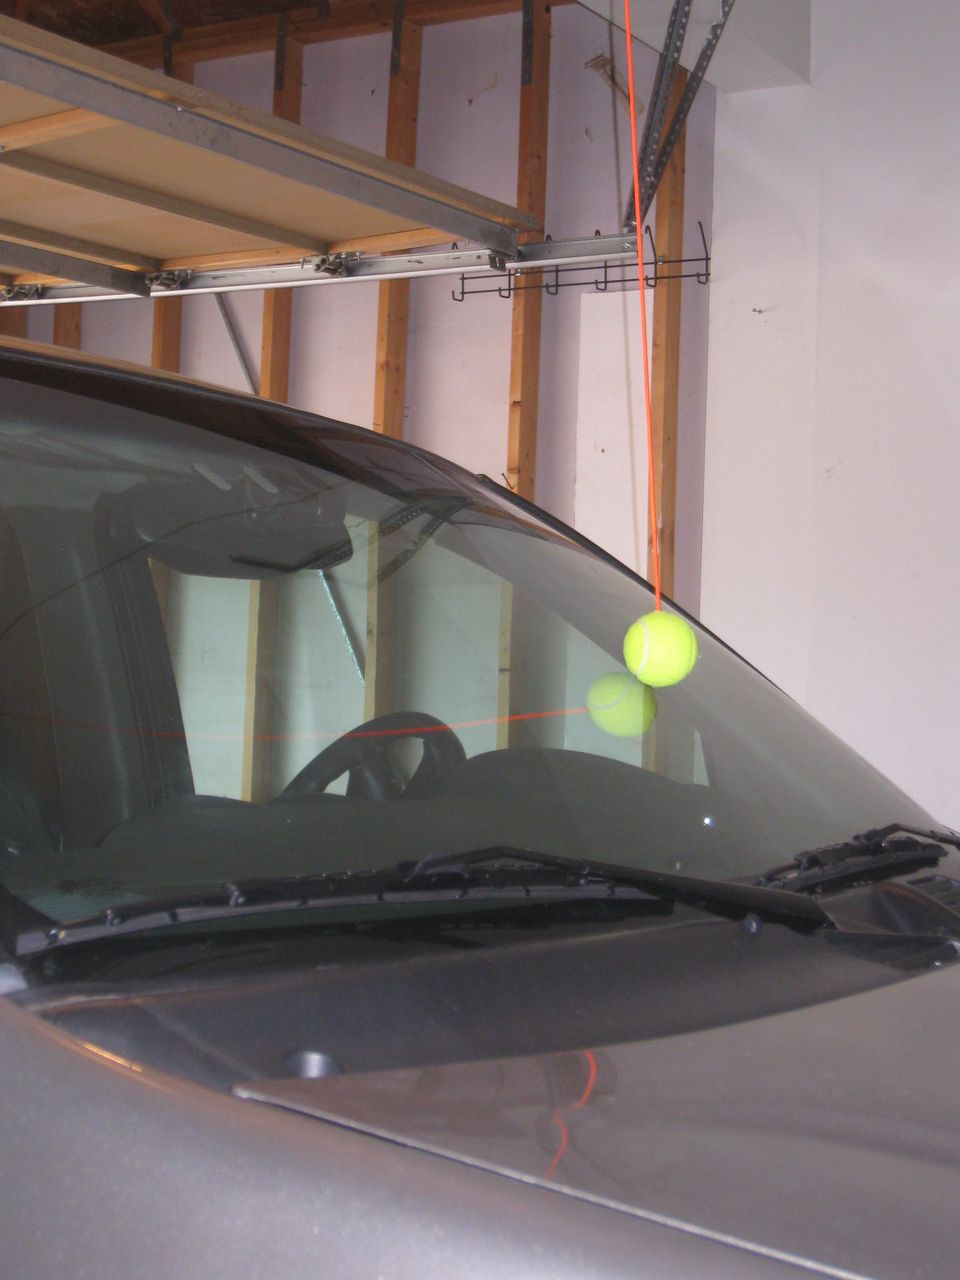 Tennis ball parking aid